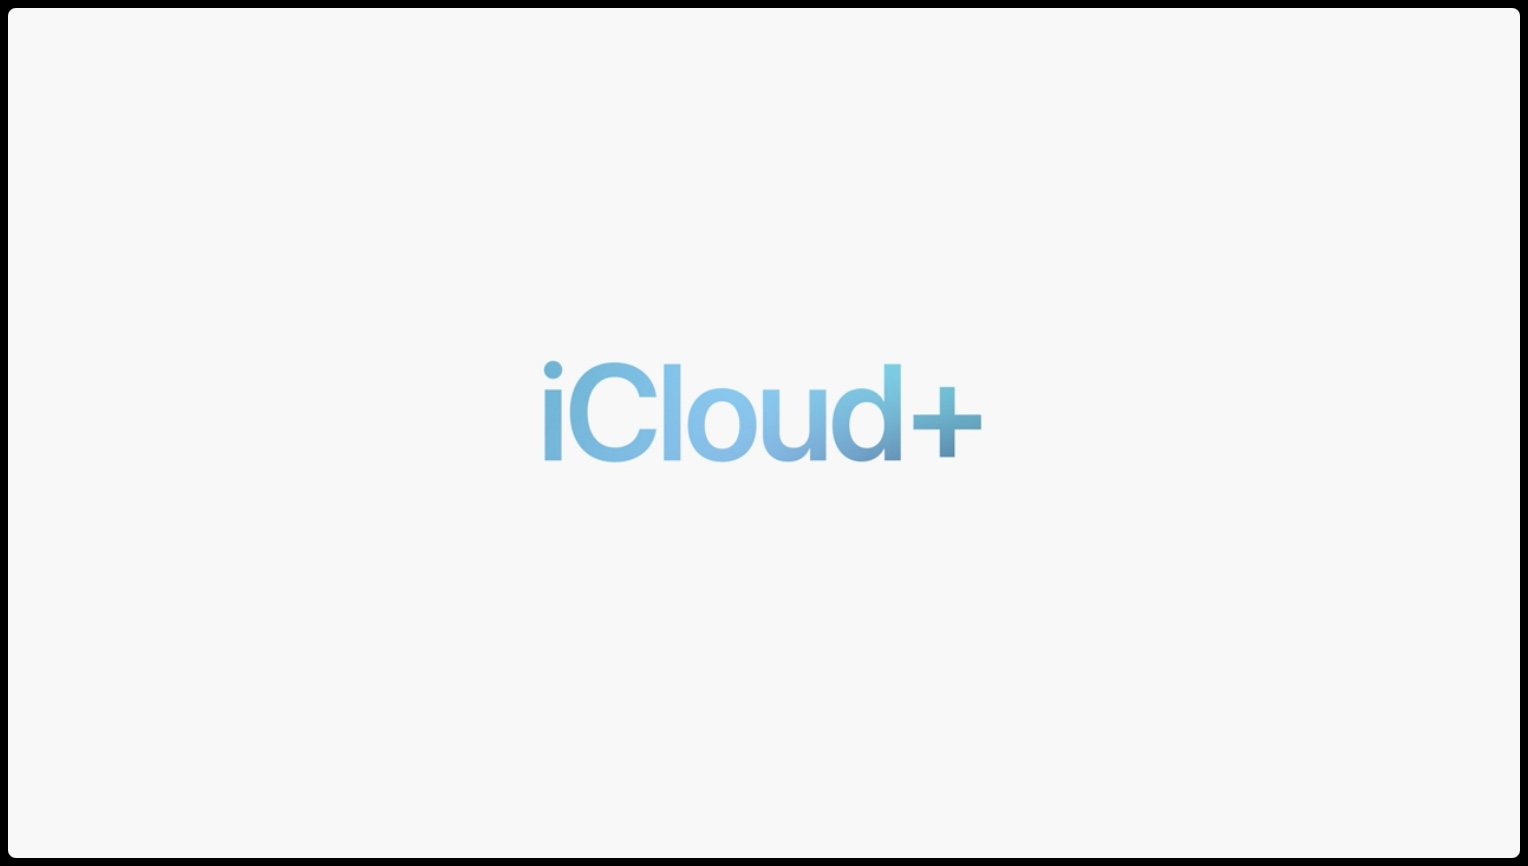 WWDC21 slide showing an iCloud+ logo set against a light gray background